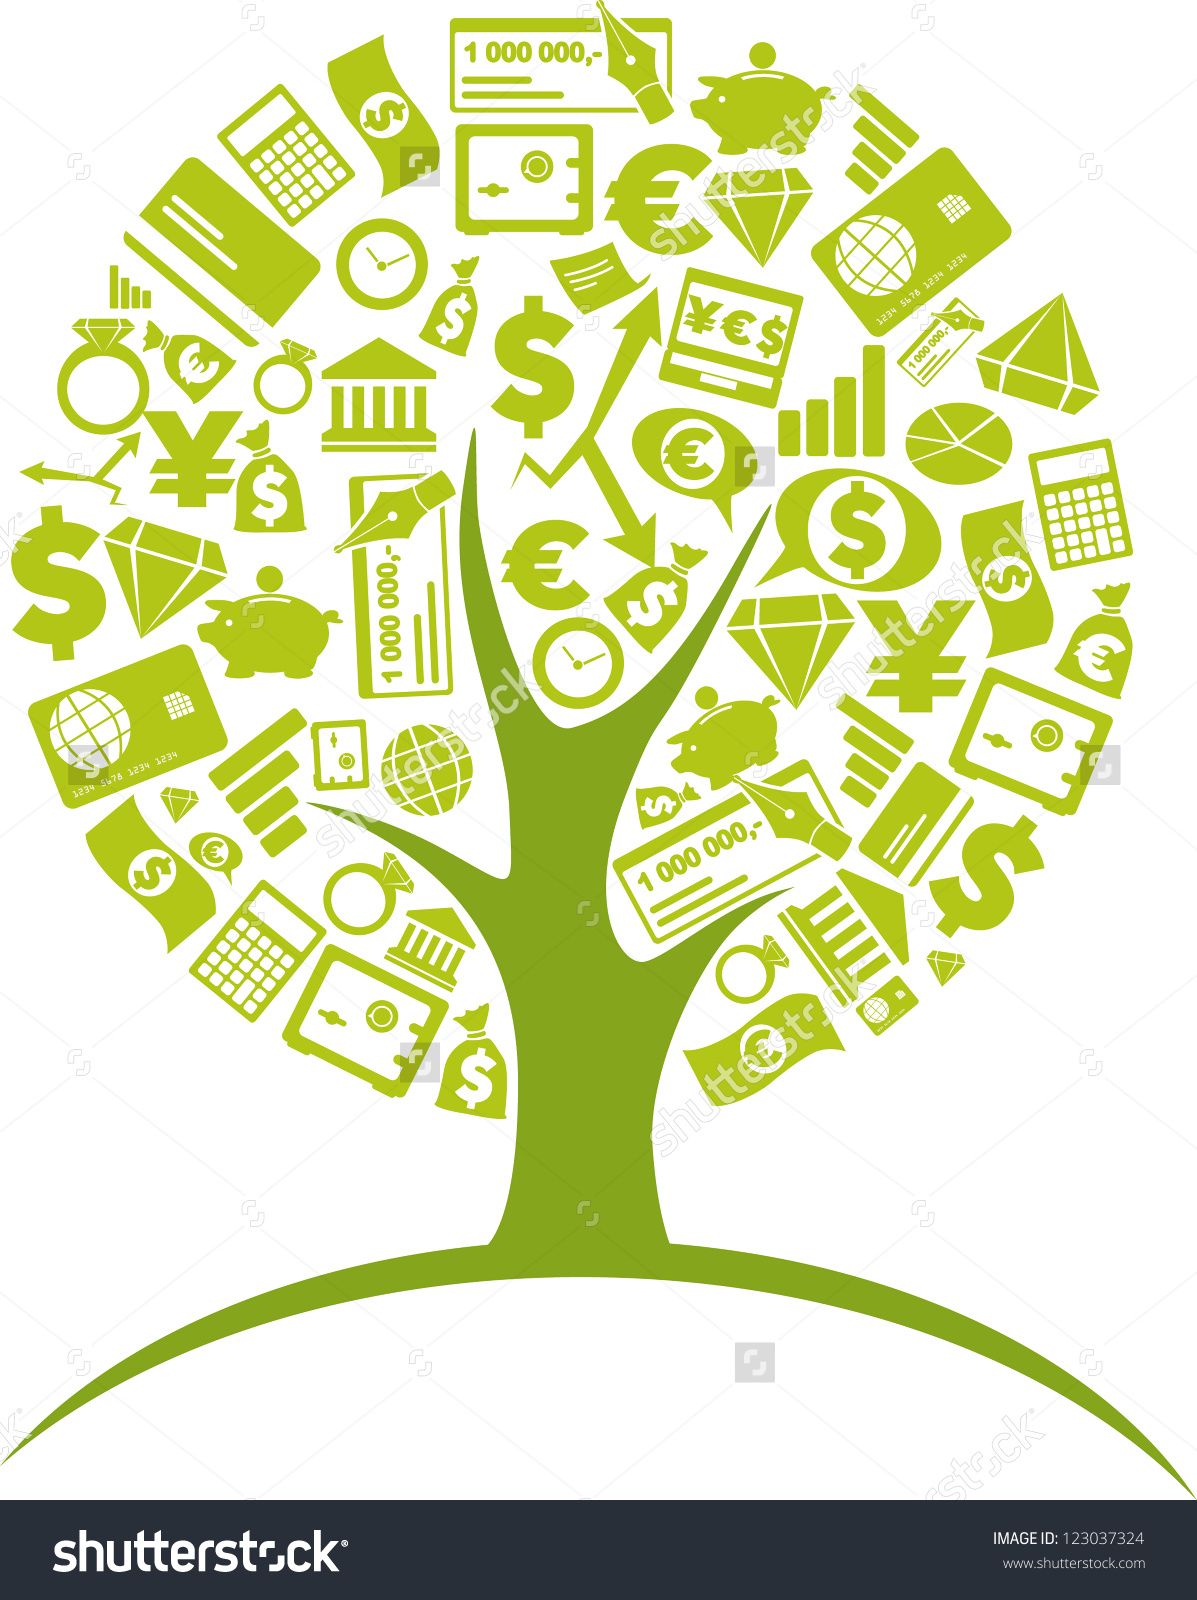 economic clipart - photo #9